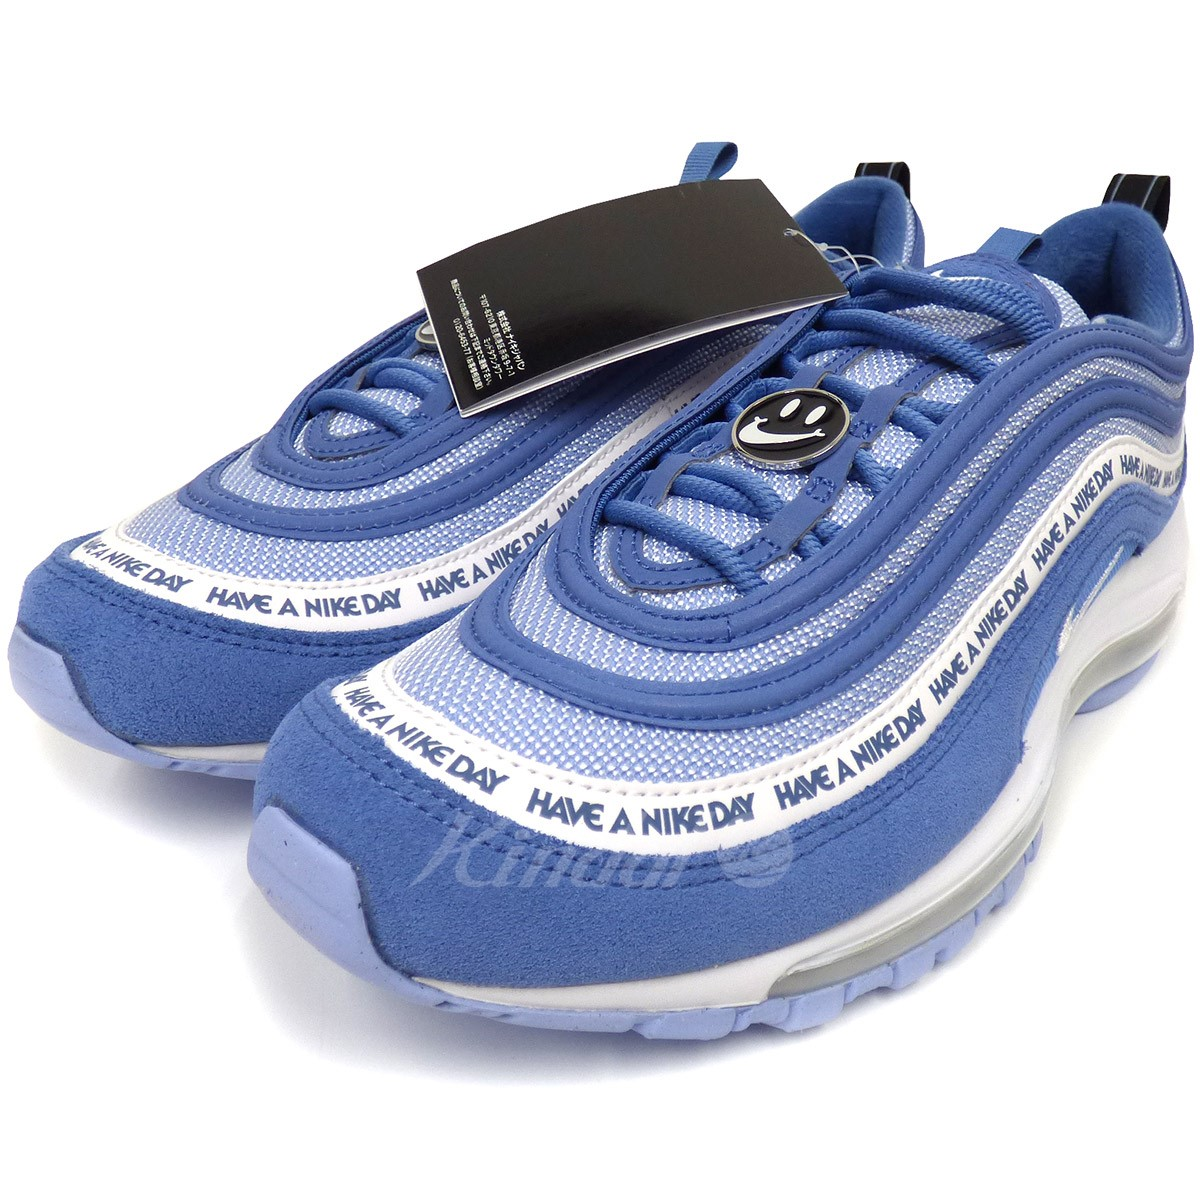 newest entire collection differently NIKE AIR MAX 95 ND Have A nike Day Air Max 95 sneakers blue size: US9. 5  (27.5cm) (Nike)